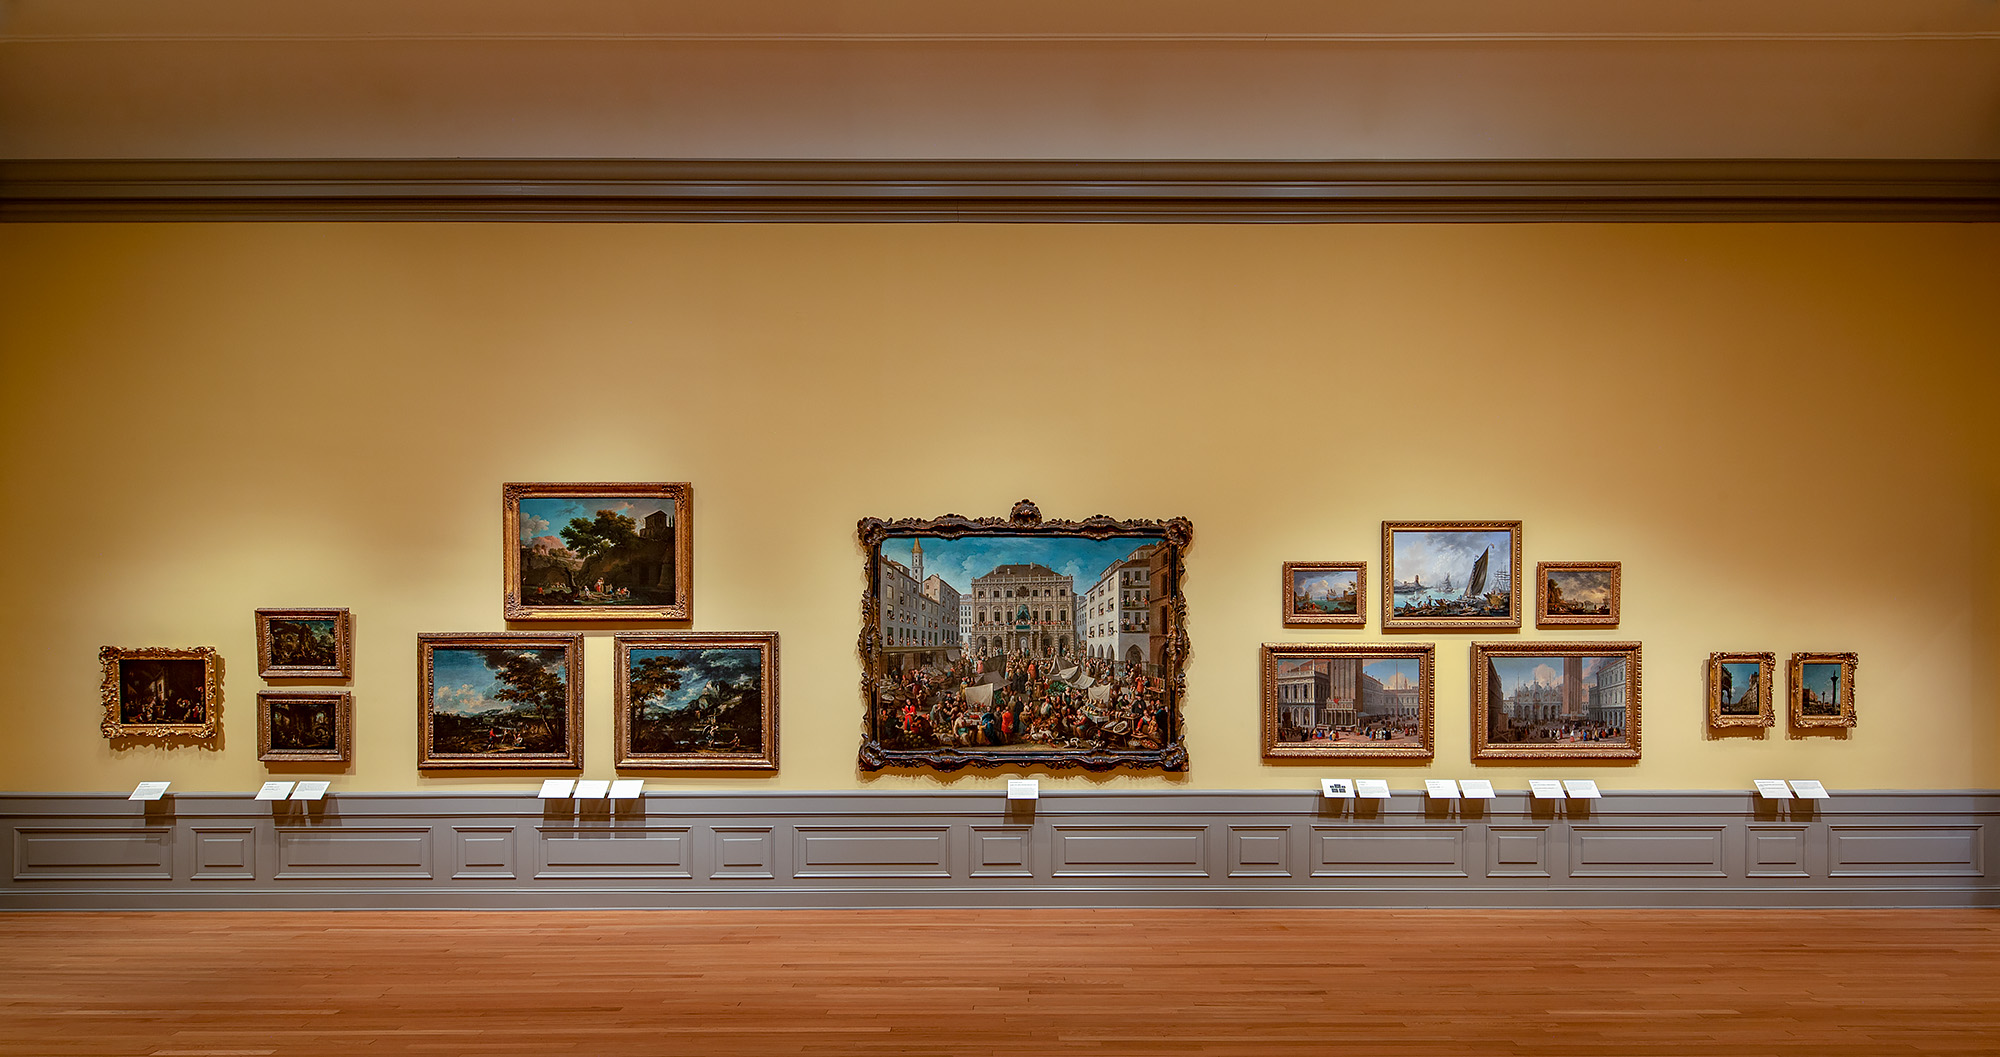 Gallery 18 of The John and Mable Ringling Museum of Art, Photo Copyright Ron Blunt